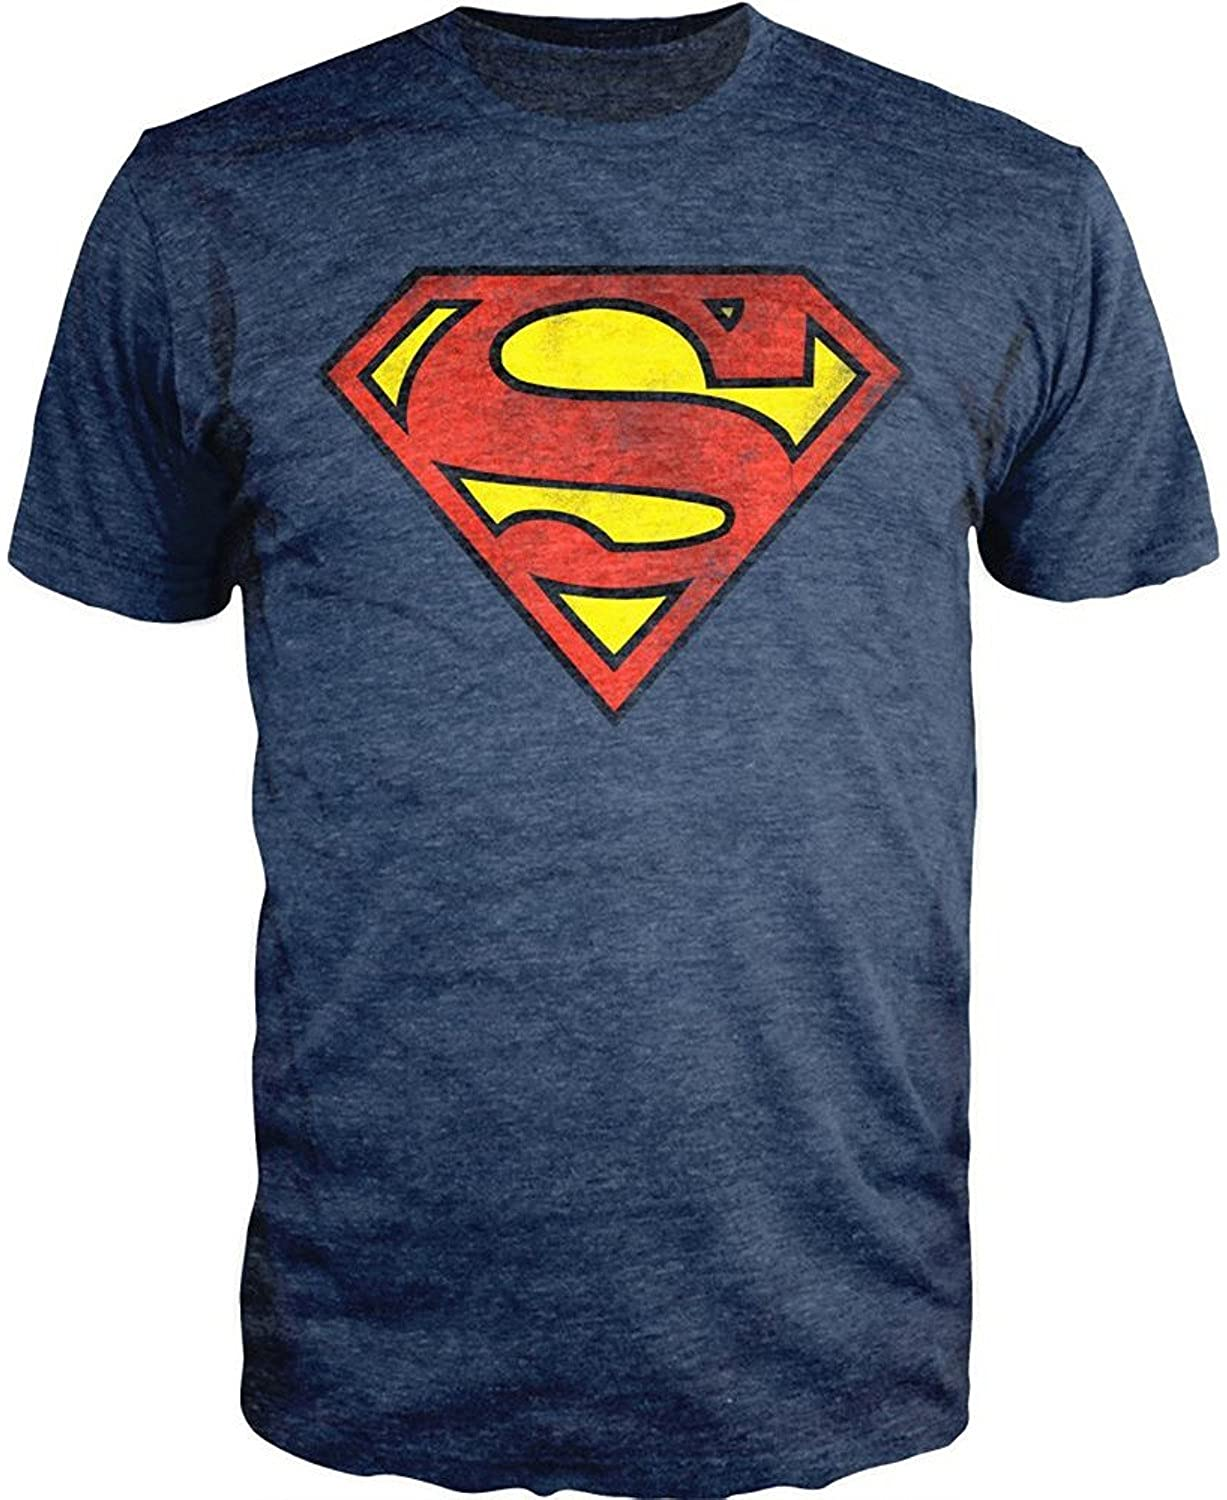 DC Comics Superman Logo Navy Heather T-Shirt Officially Licensed